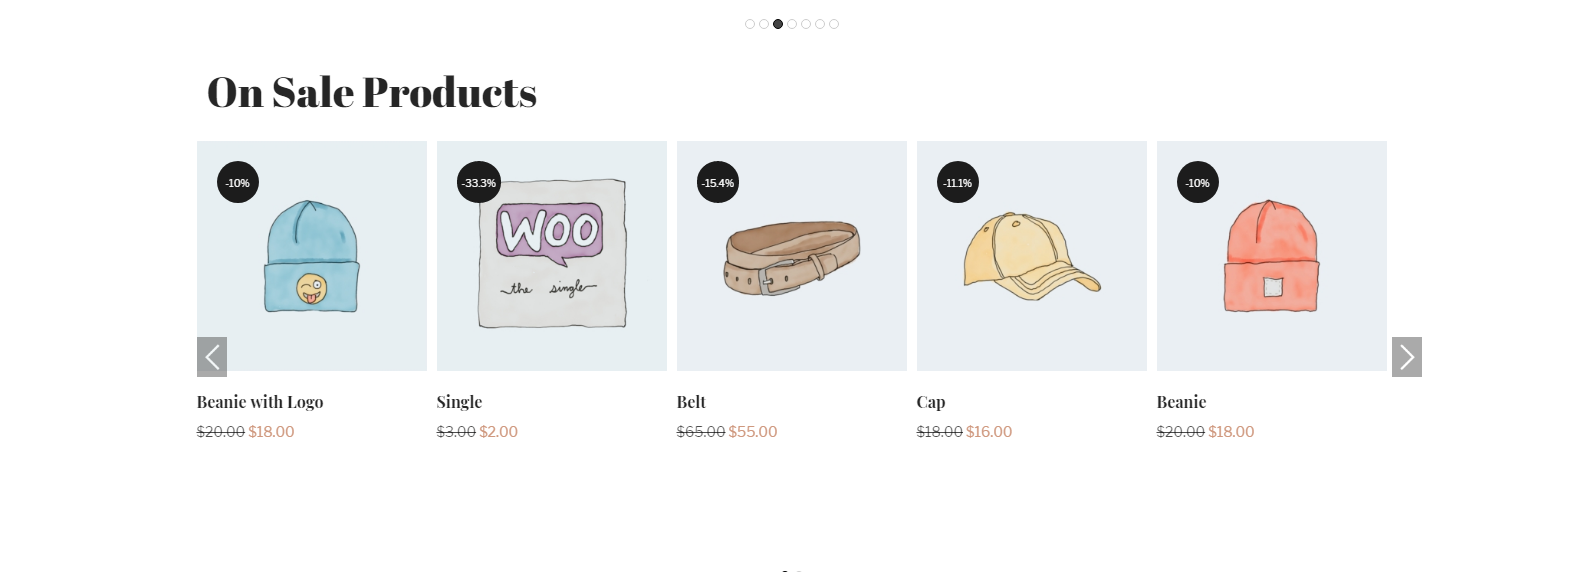 WooCommerce ON Sale Products in carousel view